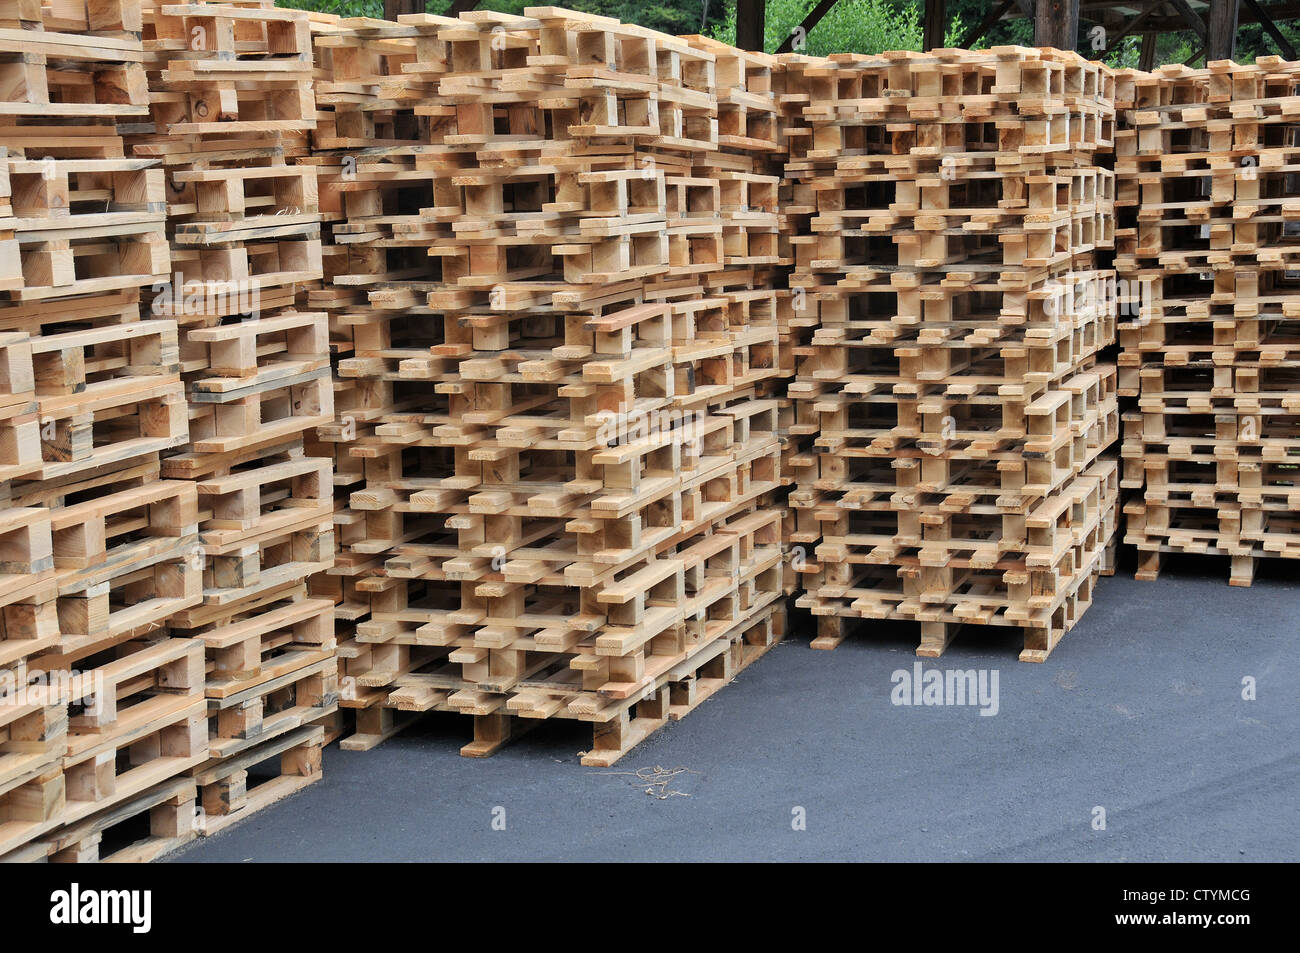 stacks of wooden pallets ready to be used to transport goods Puy de Dome Auvergne Massif Central France - Stock Image